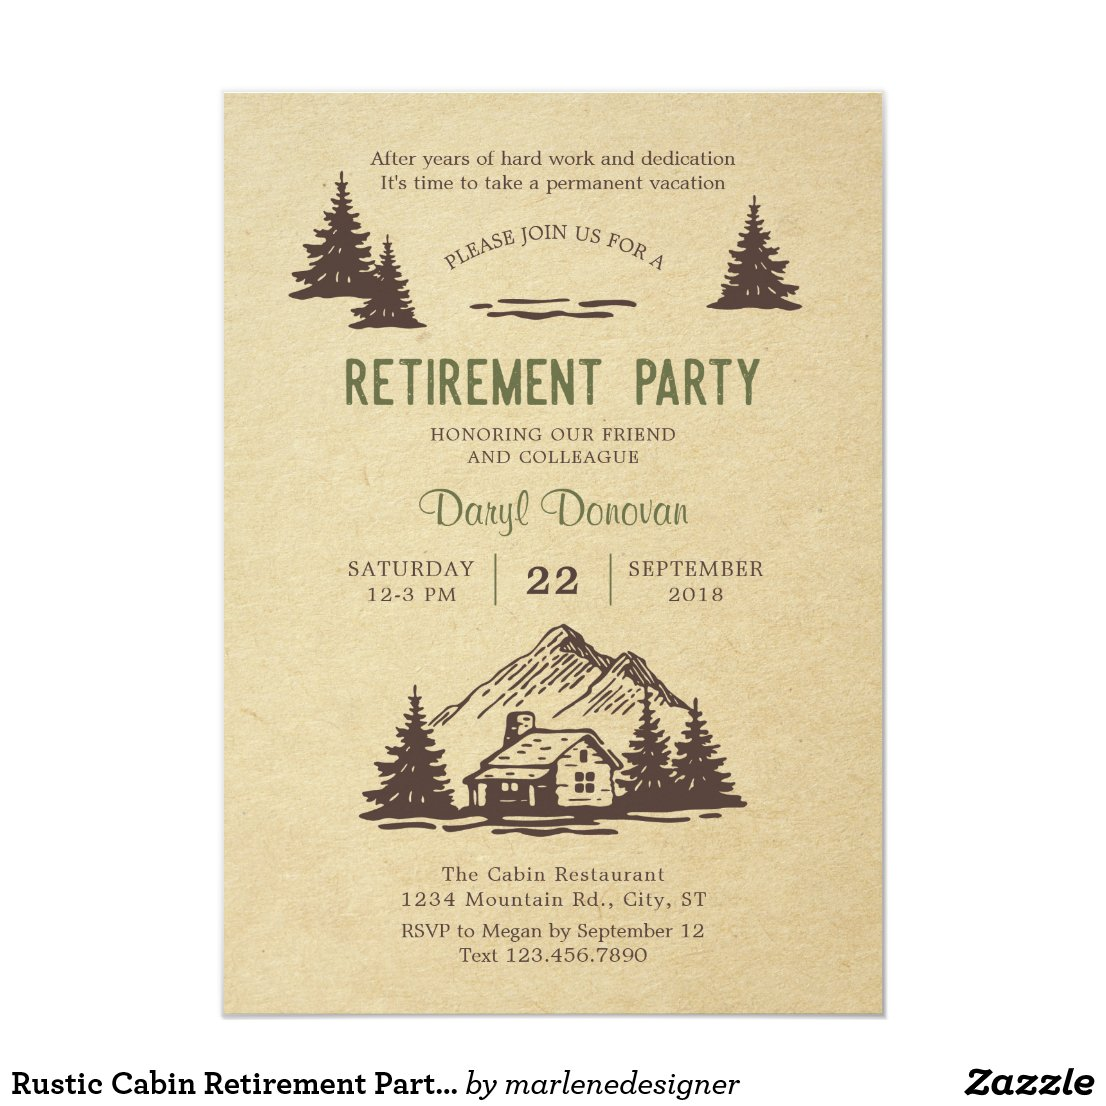 Rustic Cabin Retirement Party Invitation